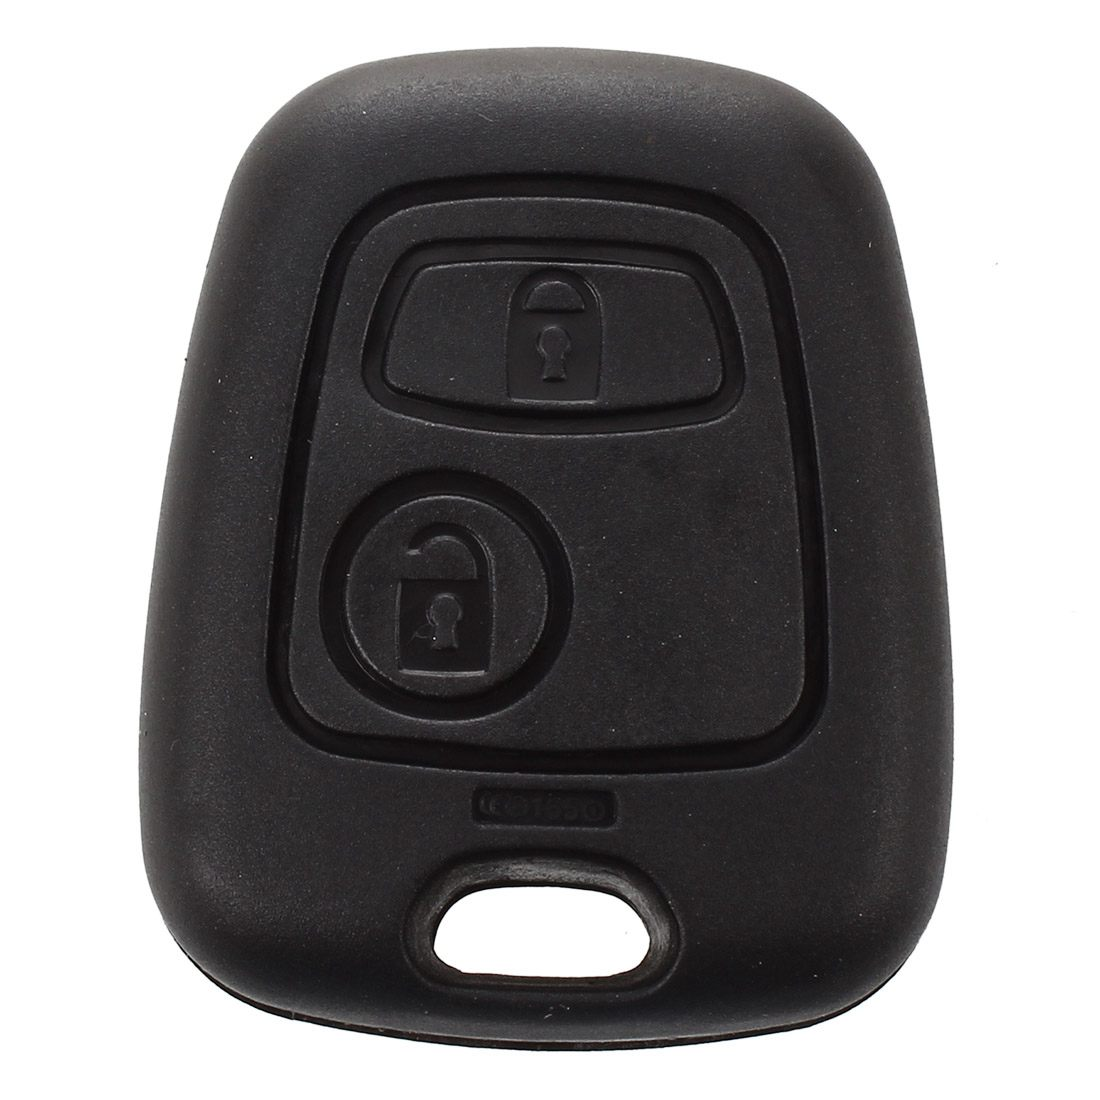 2 button remote key case shell for citroen c1 c4 peugeot. Black Bedroom Furniture Sets. Home Design Ideas